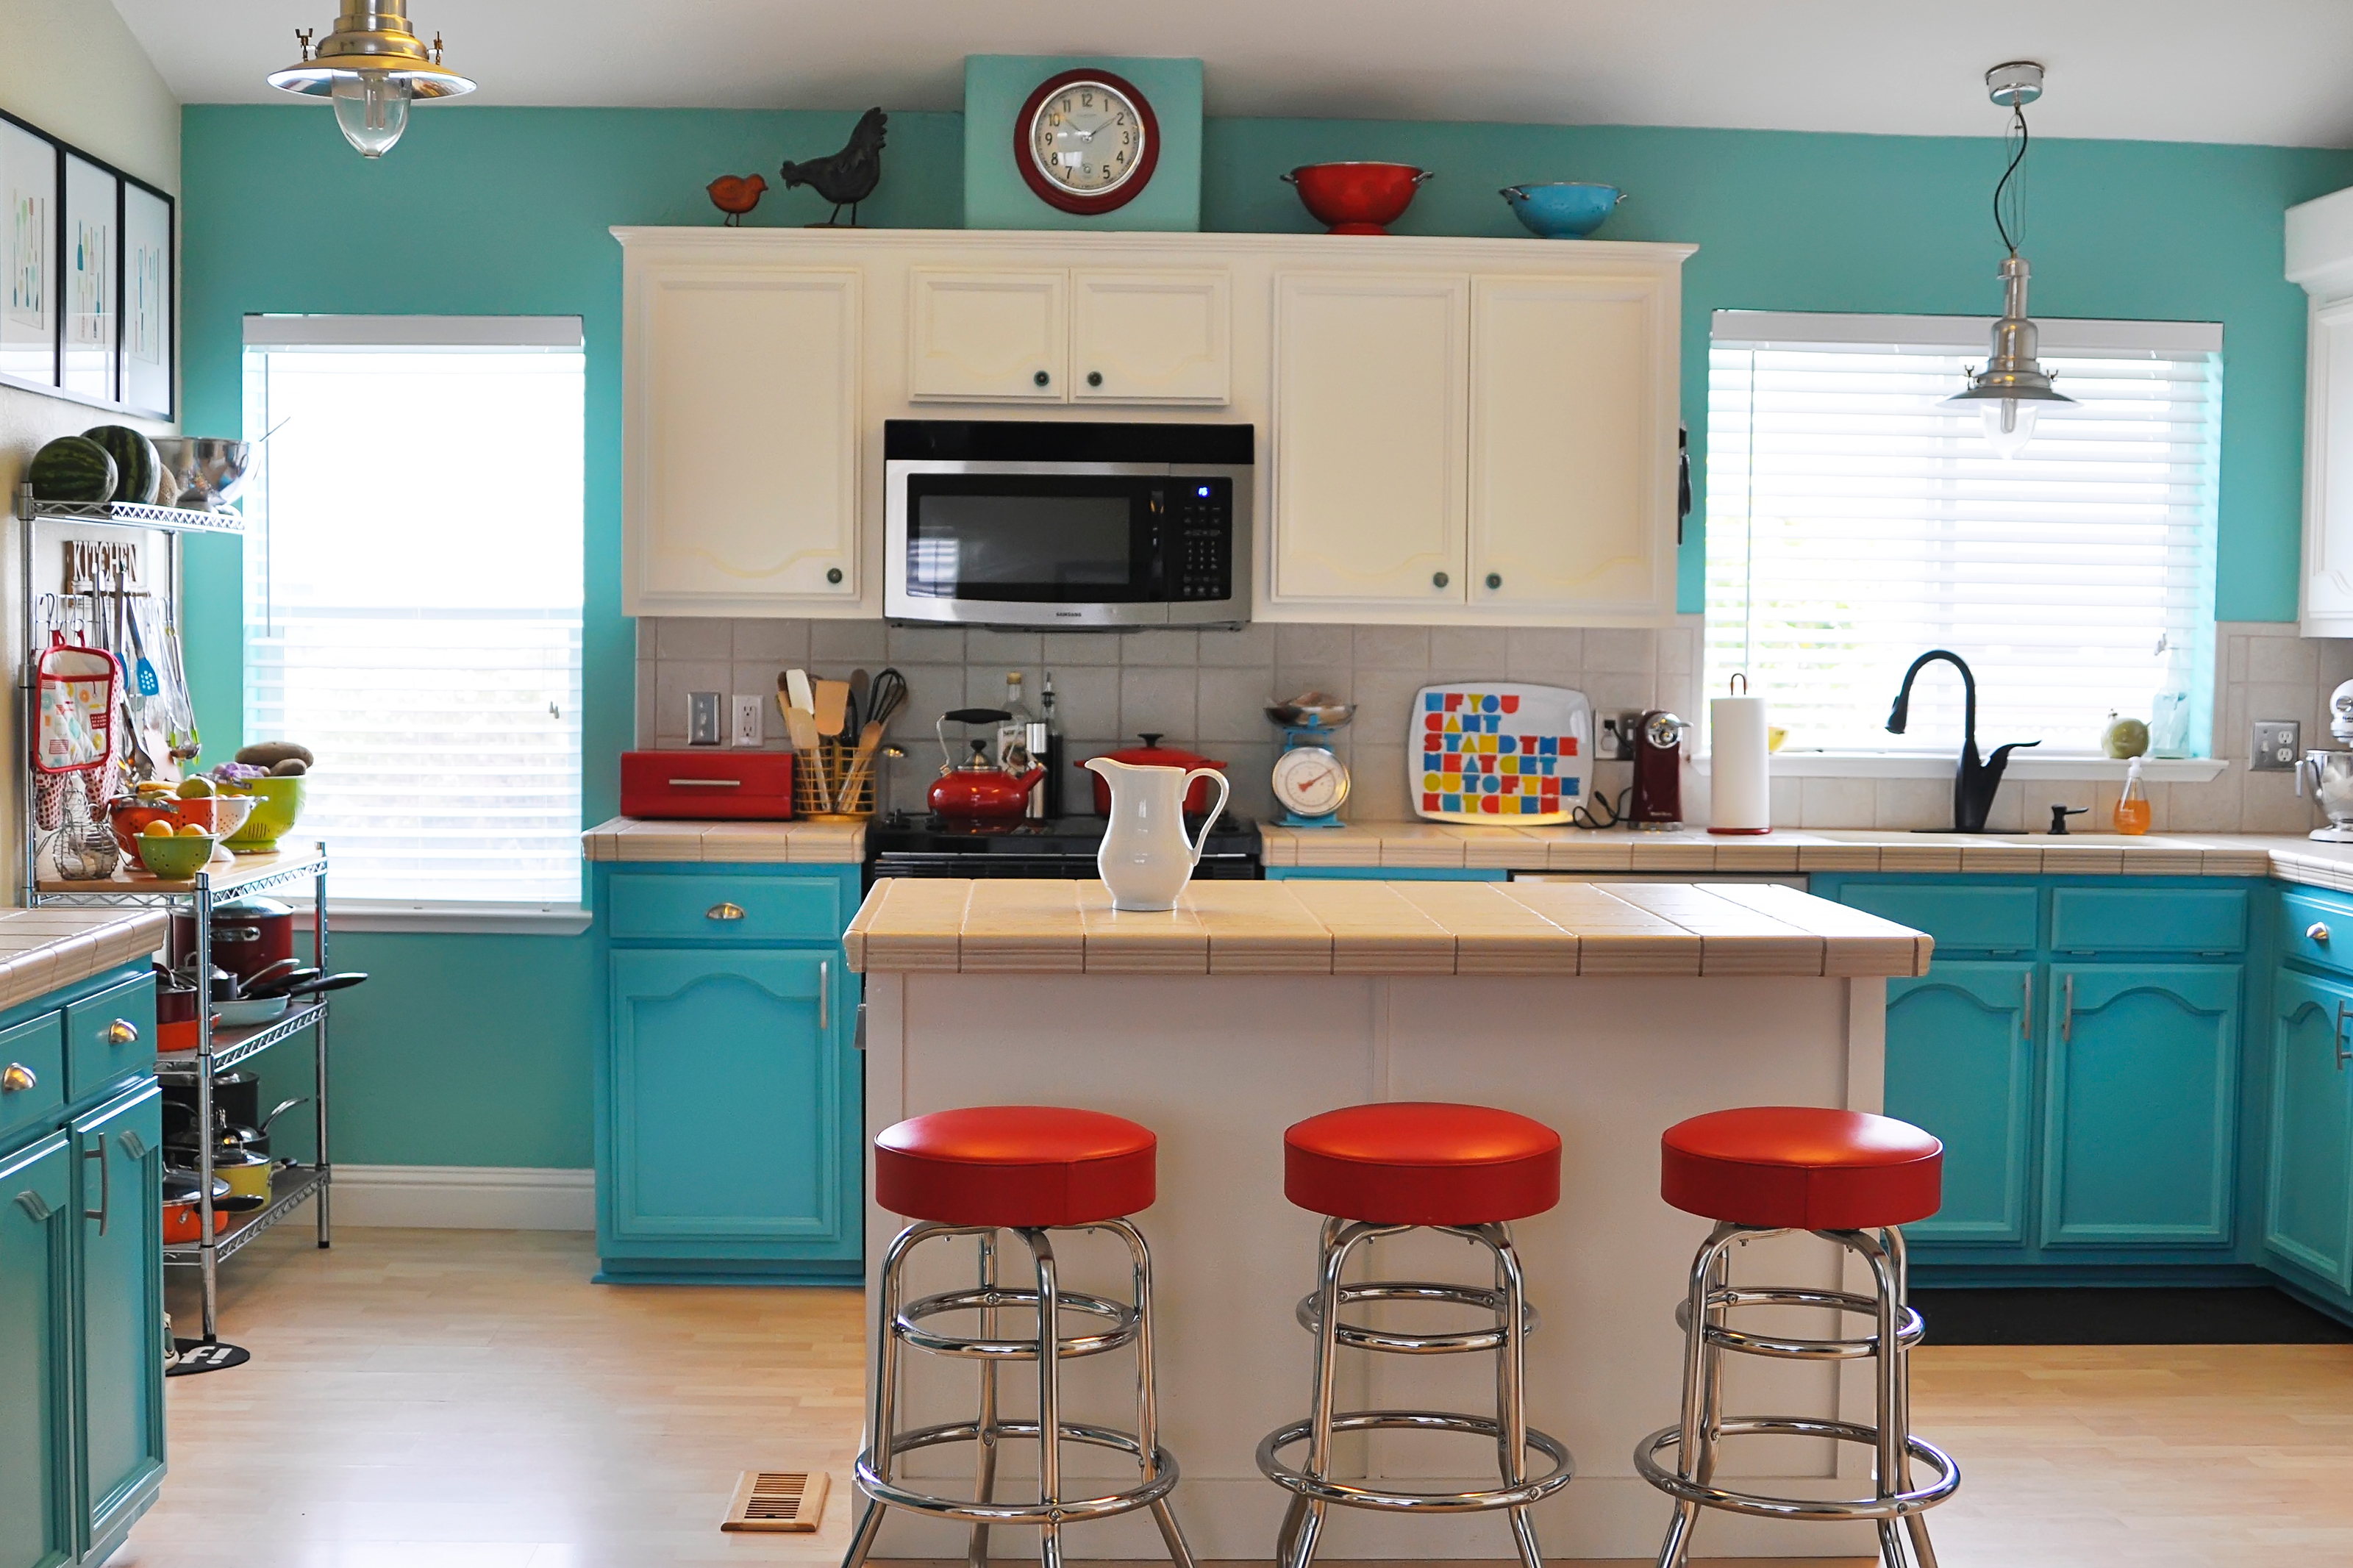 HouseLogic & Classic Kitchen Remodeling | HouseLogic Kitchen Remodeling Tips